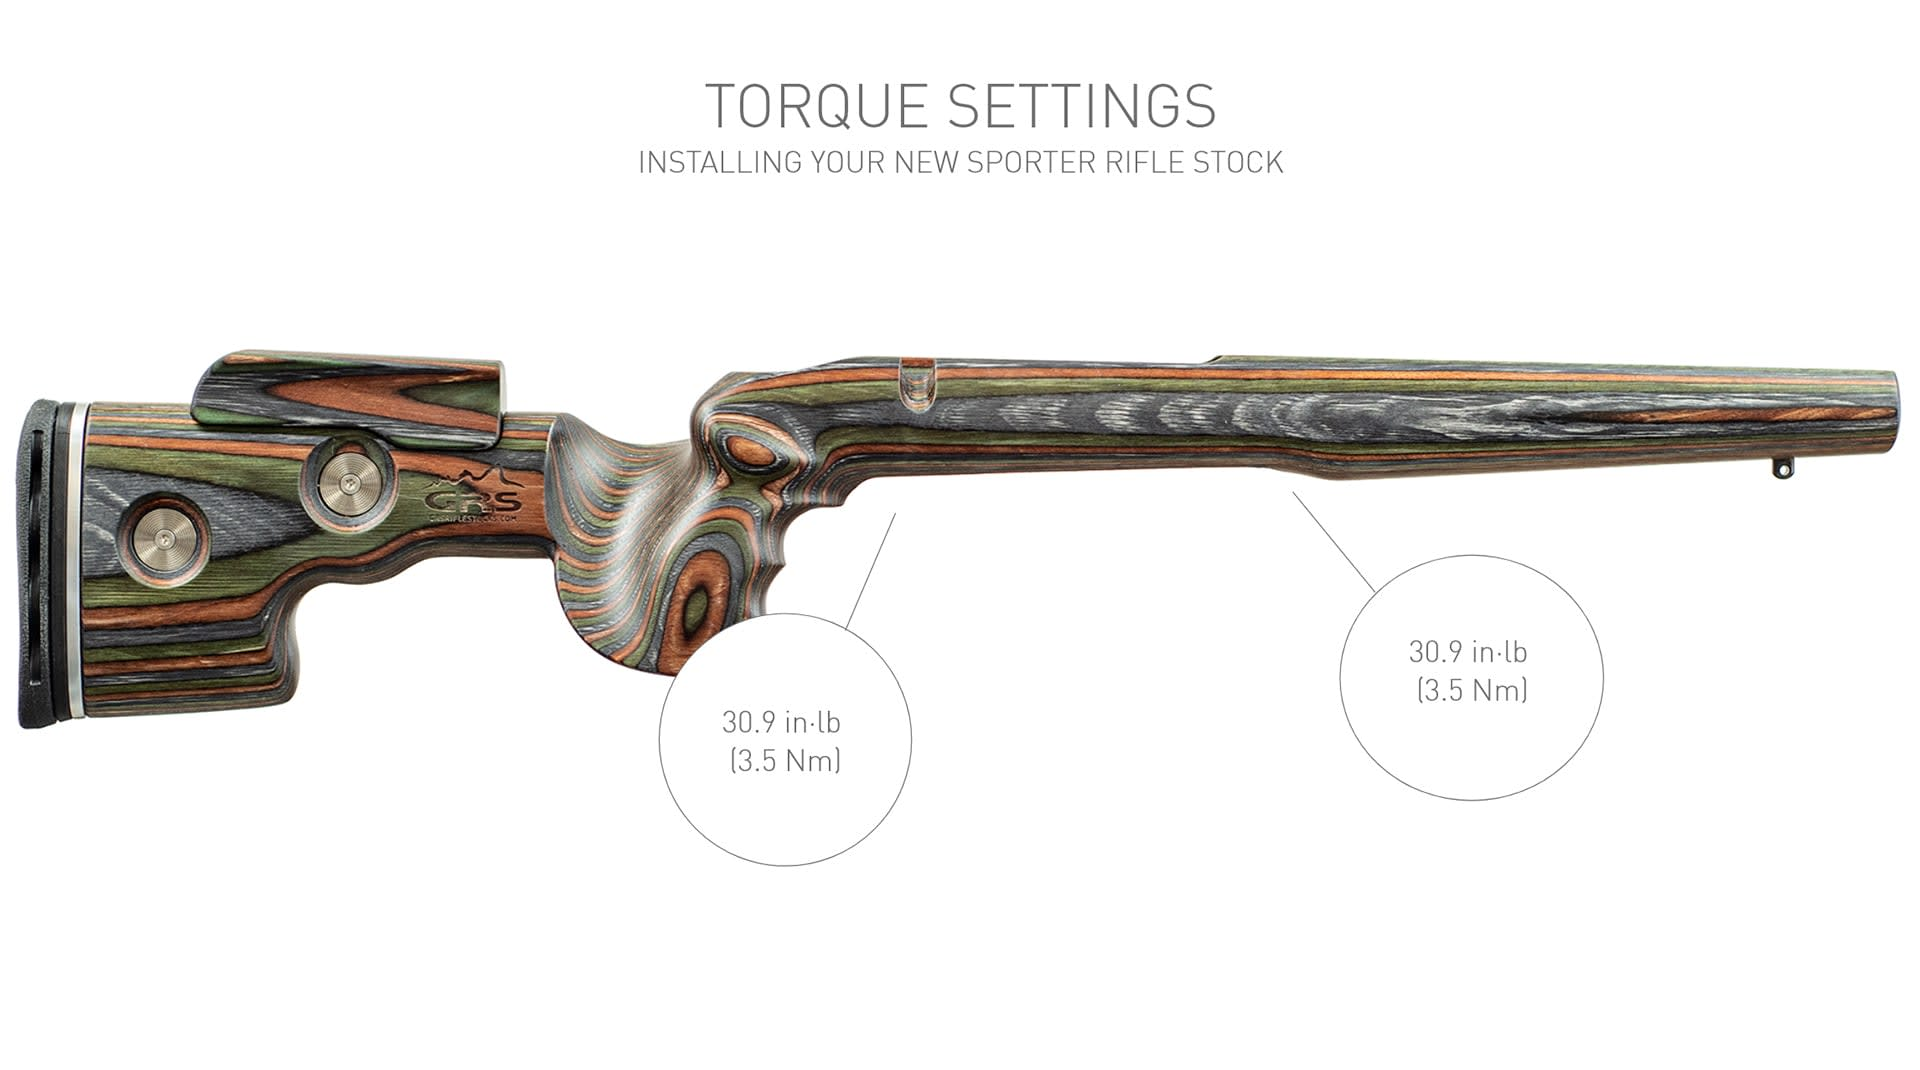 Icon for Torque Settings for GRS Sporter